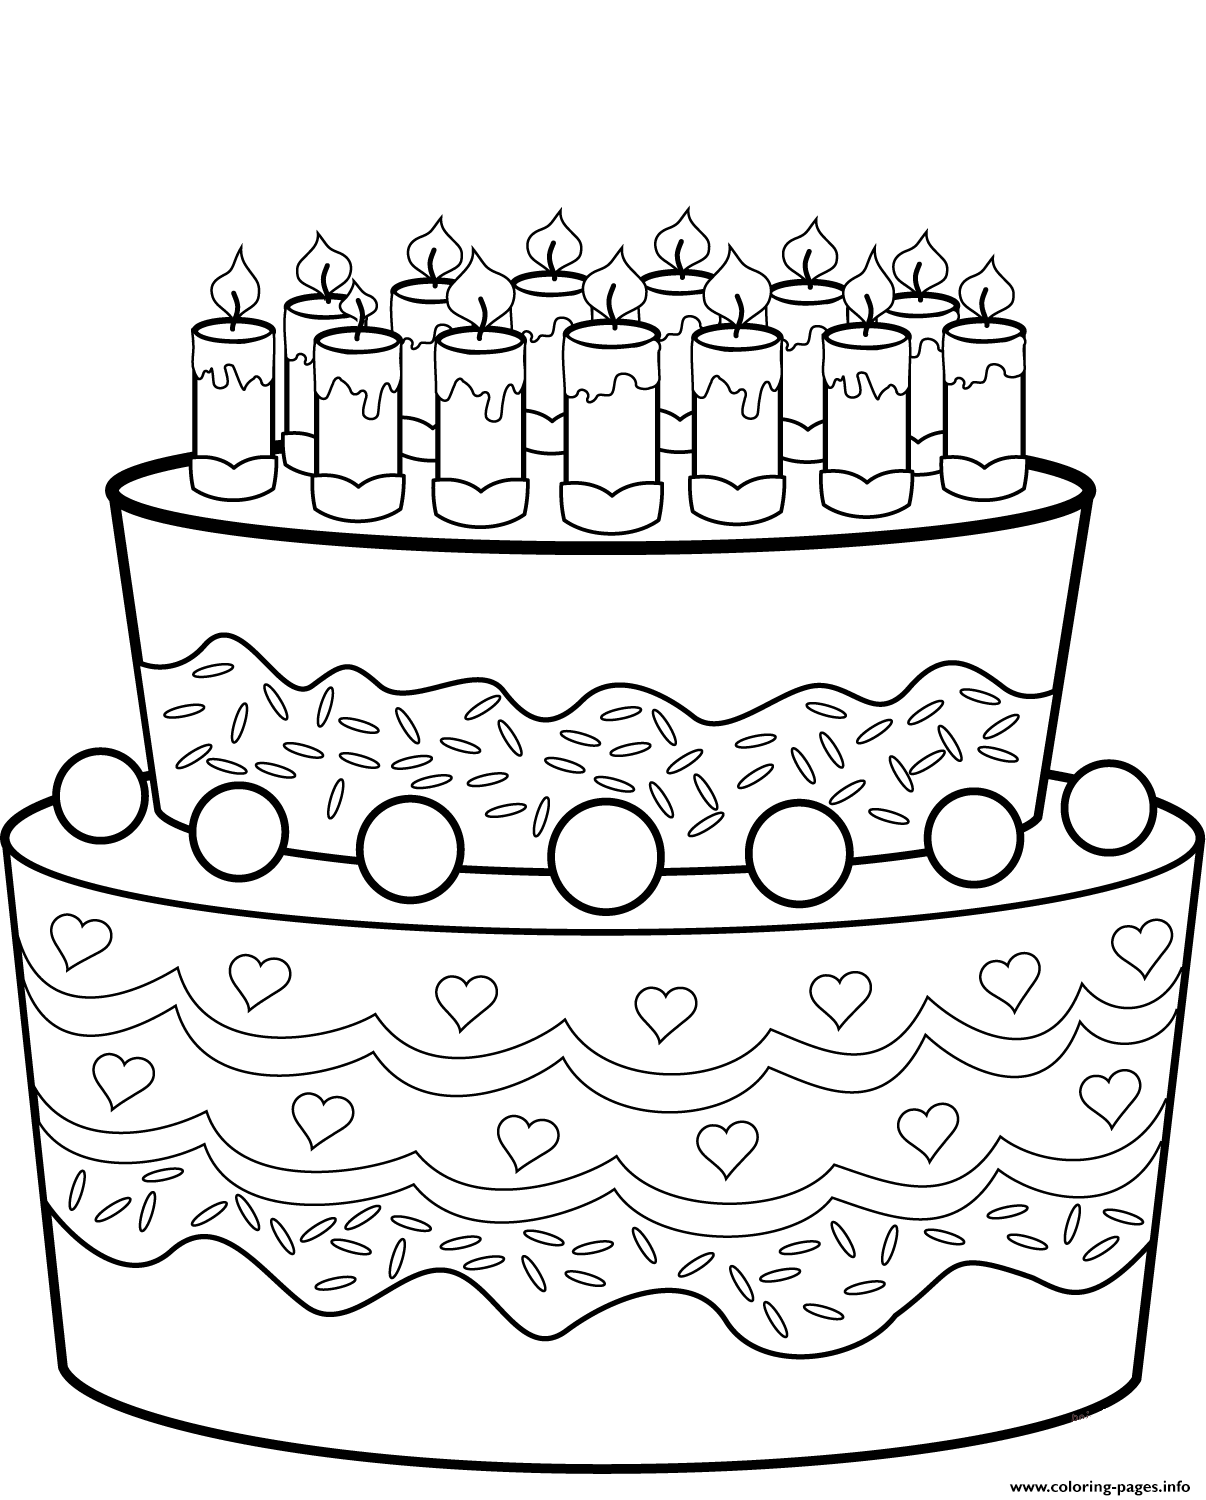 lol cake coloring pages birthday cake pictureba5e coloring pages printable lol coloring cake pages